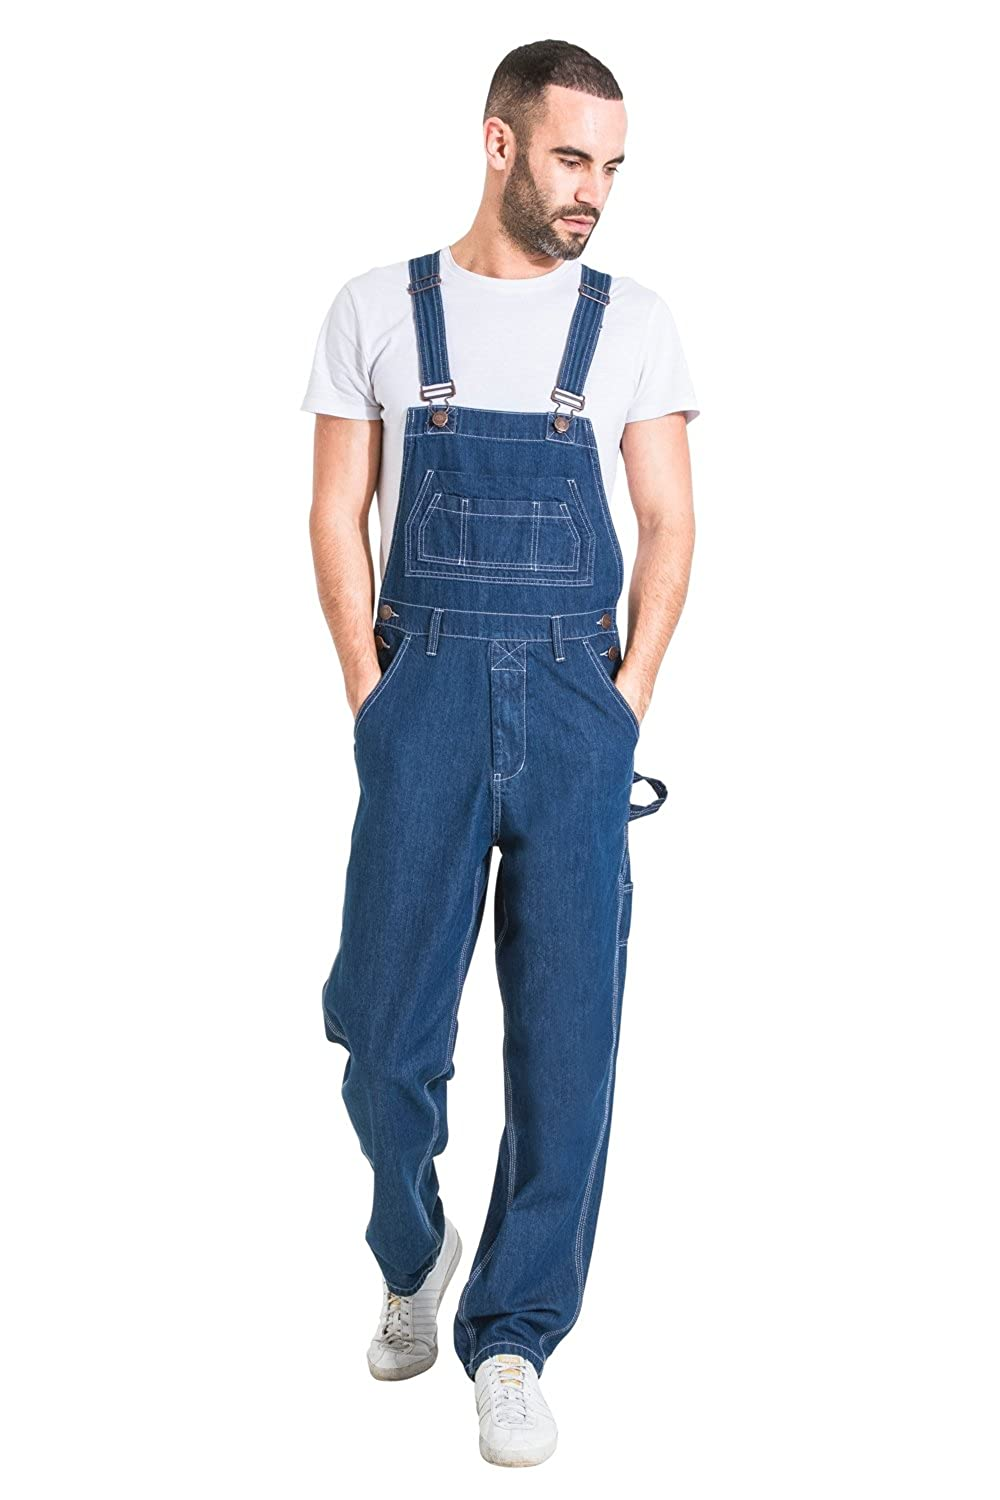 USKEES Mens Relaxed Fit Denim Dungarees - Stonewash Value Overalls Cheap Dungarees MENSVALUESW